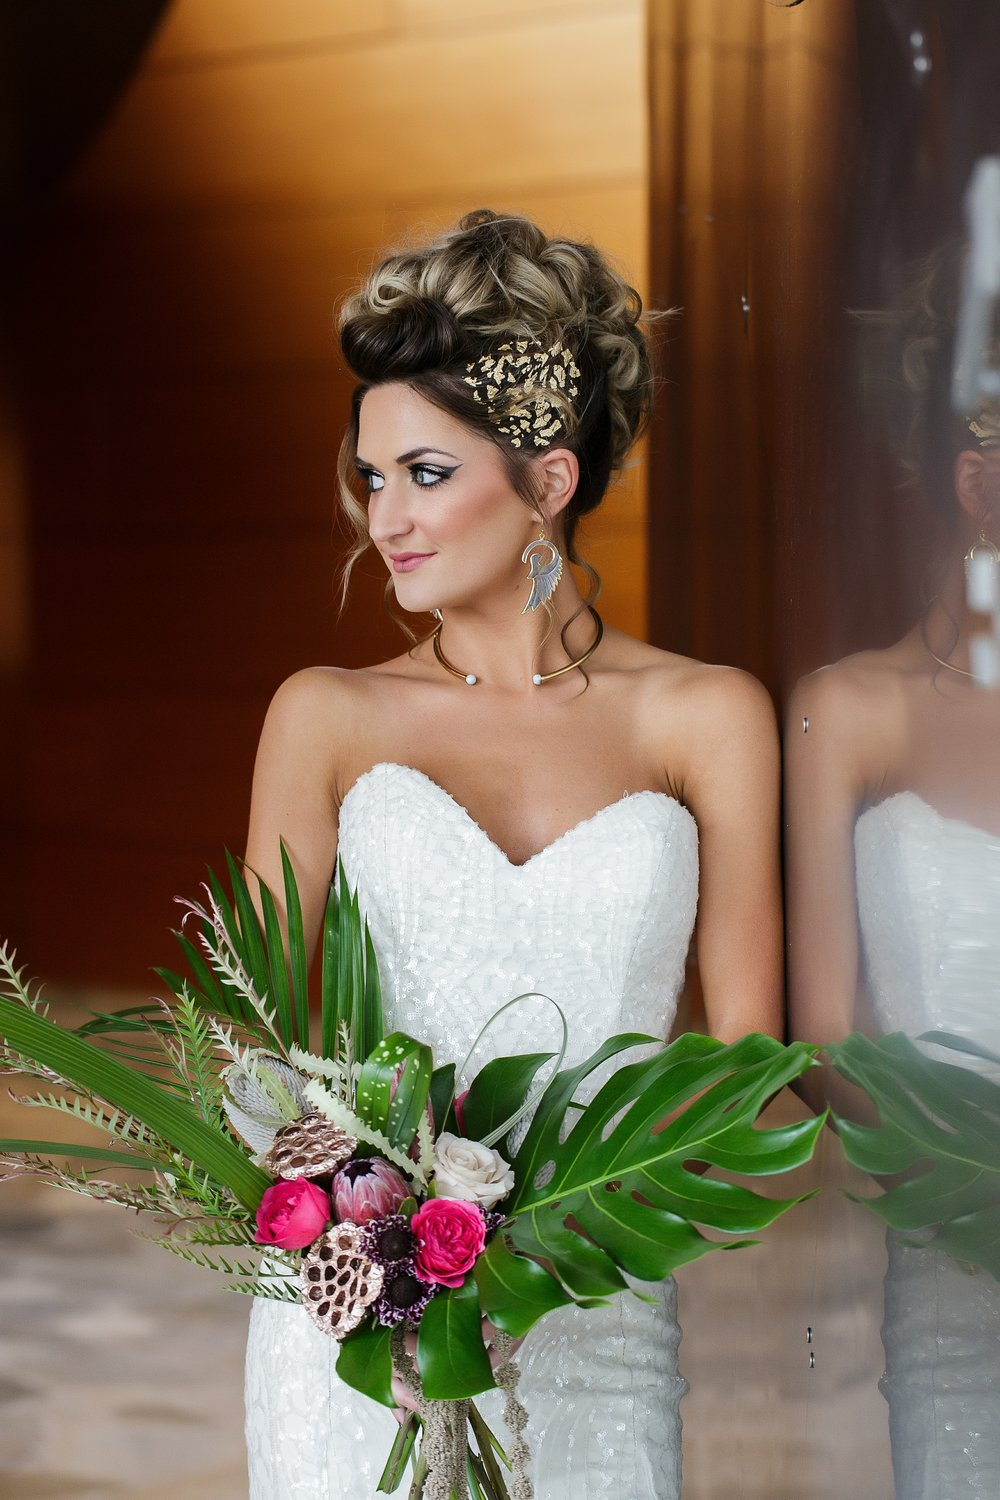 Fox-and-Fern-Bridal-Bouquet-2050-Styled-Shoot.jpg